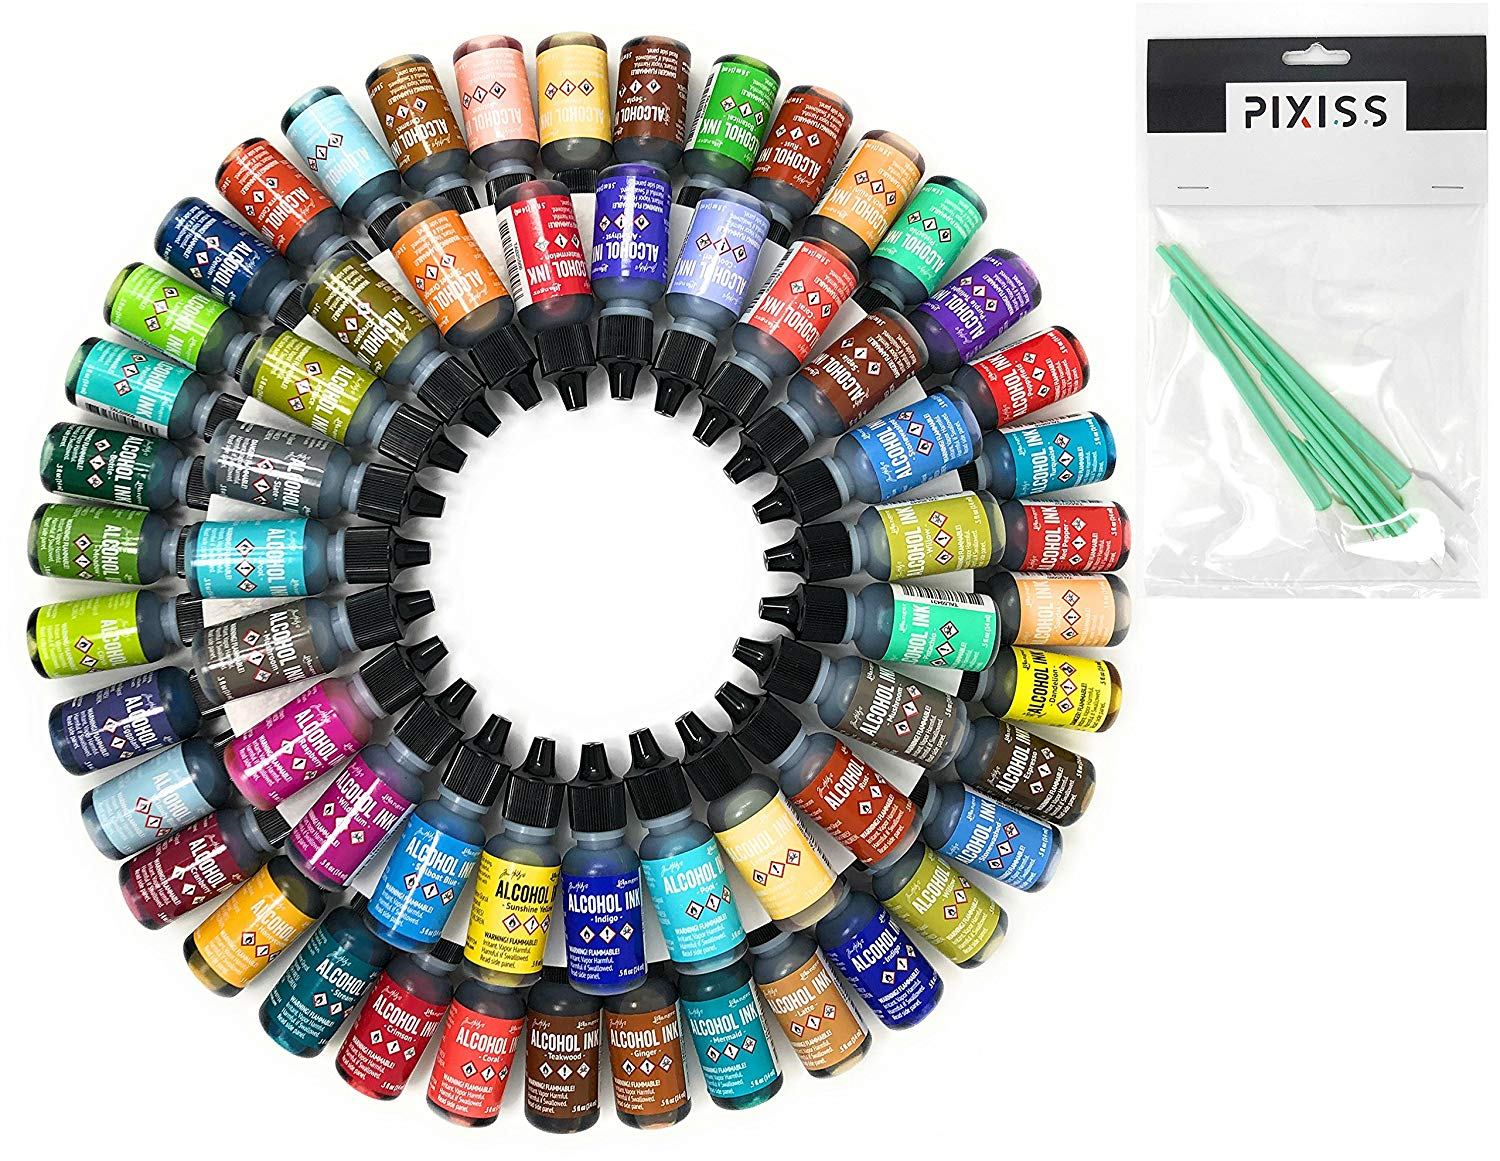 50x Tim Holtz Alcohol Ink .5oz Bottles (Assorted Colors, No Duplicates) and 8X Pixiss Ink Blending Tools